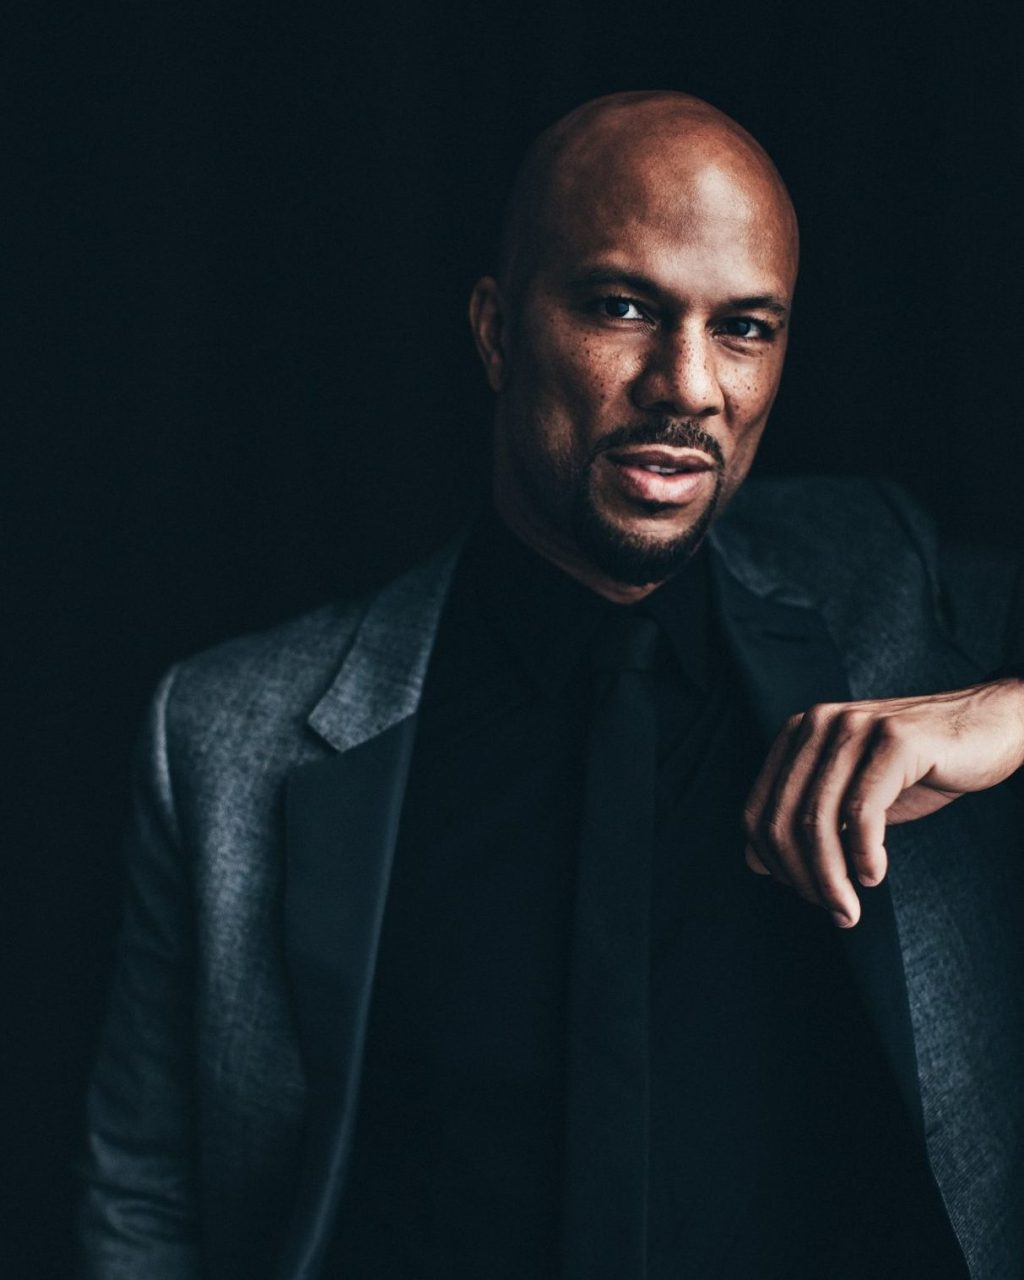 Grammy Award-winning artist, actor and Chicago native Common teams with members of the Chicago Symphony Orchestra for its 30th annual Corporate Night benefit concert Monday, June 3. - Courtesy of the Chicago Symphony Orchestra